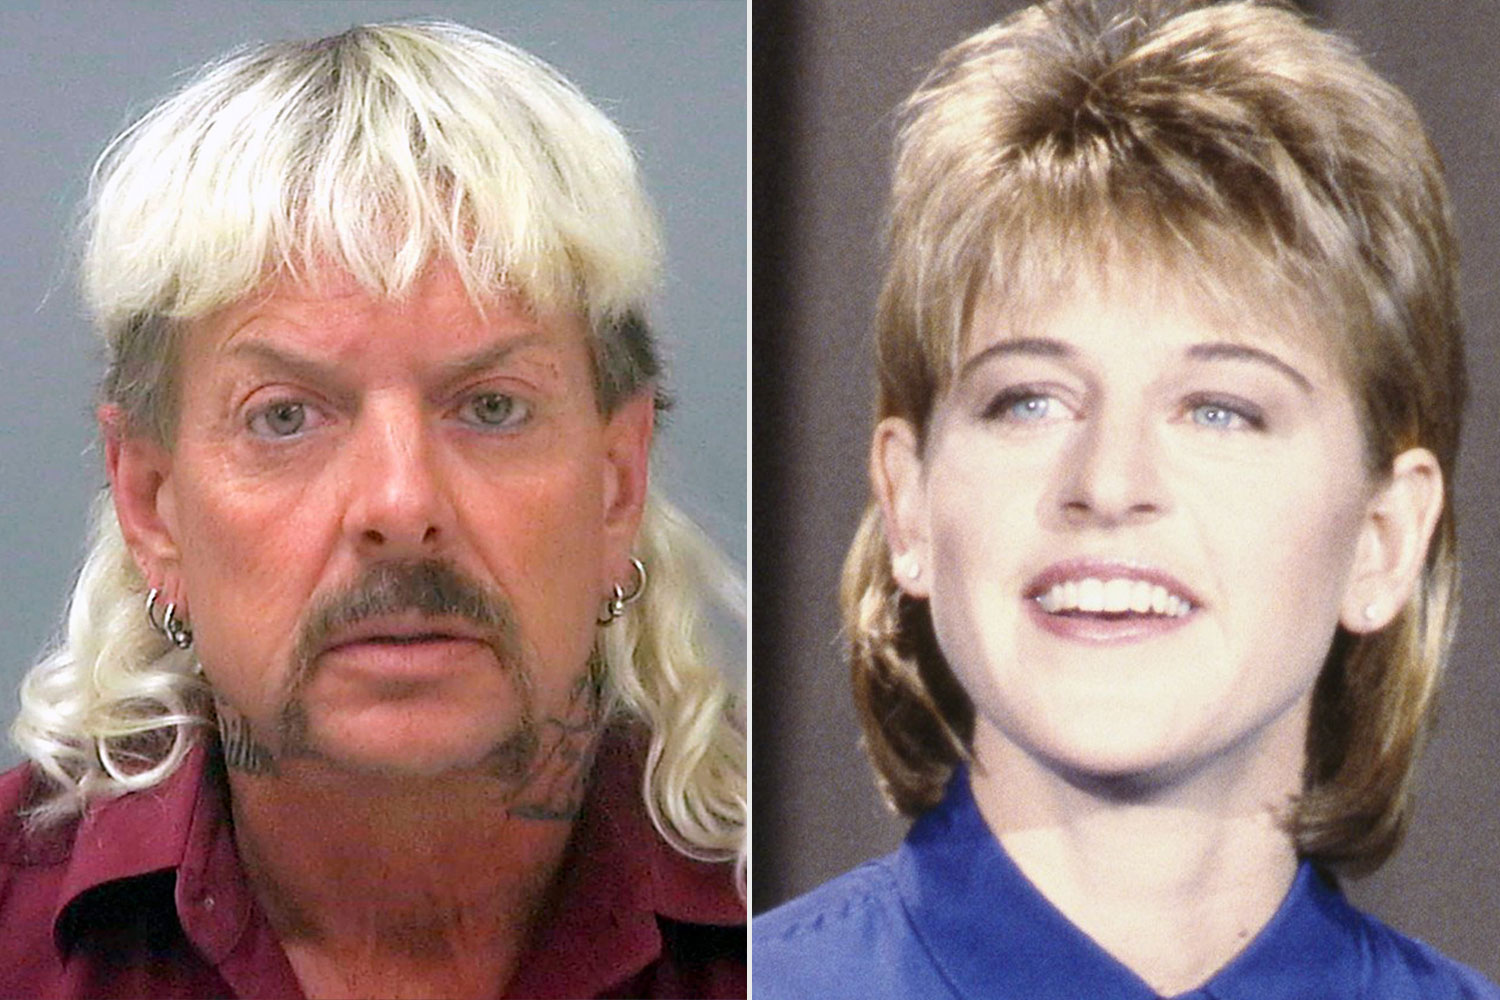 Ellen DeGeneres Hilariously Compares Her Former Mullet Hairstyle to Tiger King's Joe Exotic